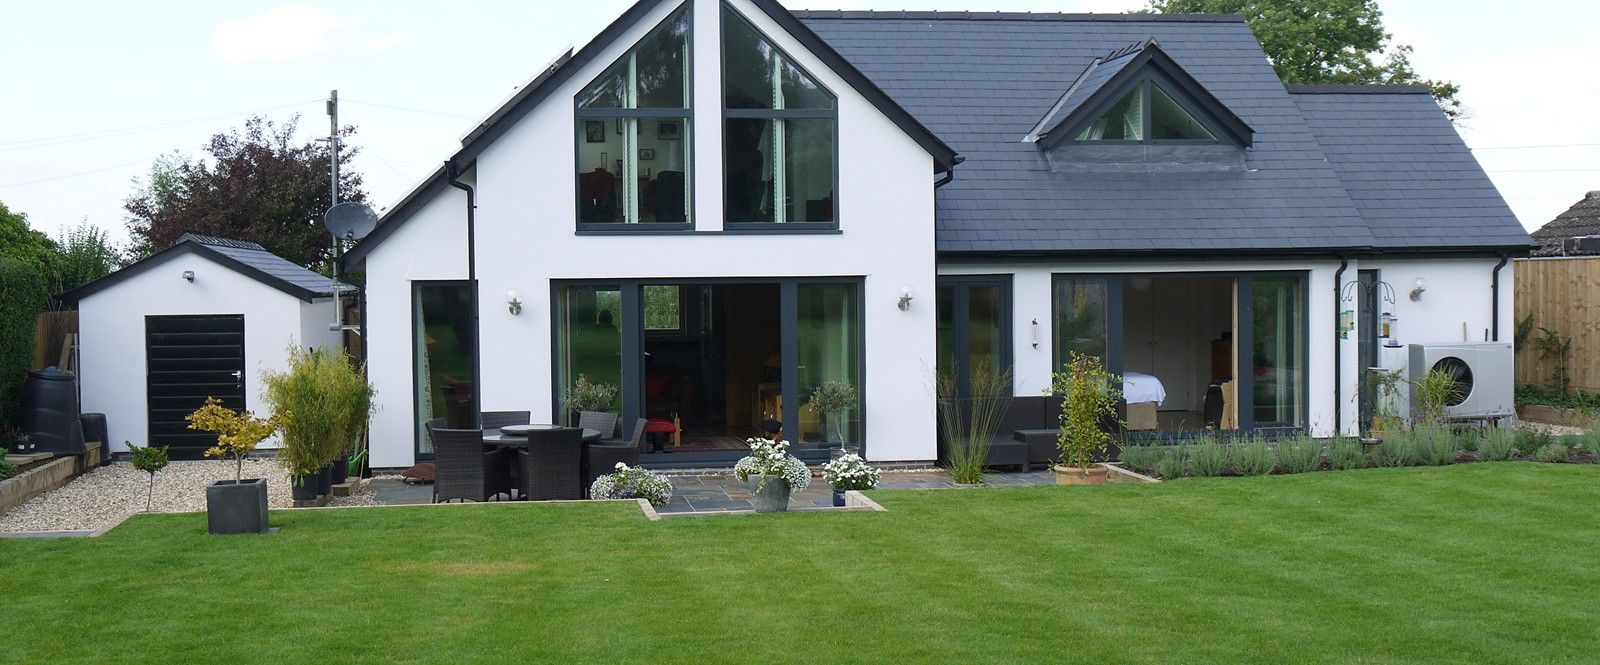 Potton self build homes beautifully tailored using for Home designs under 150k